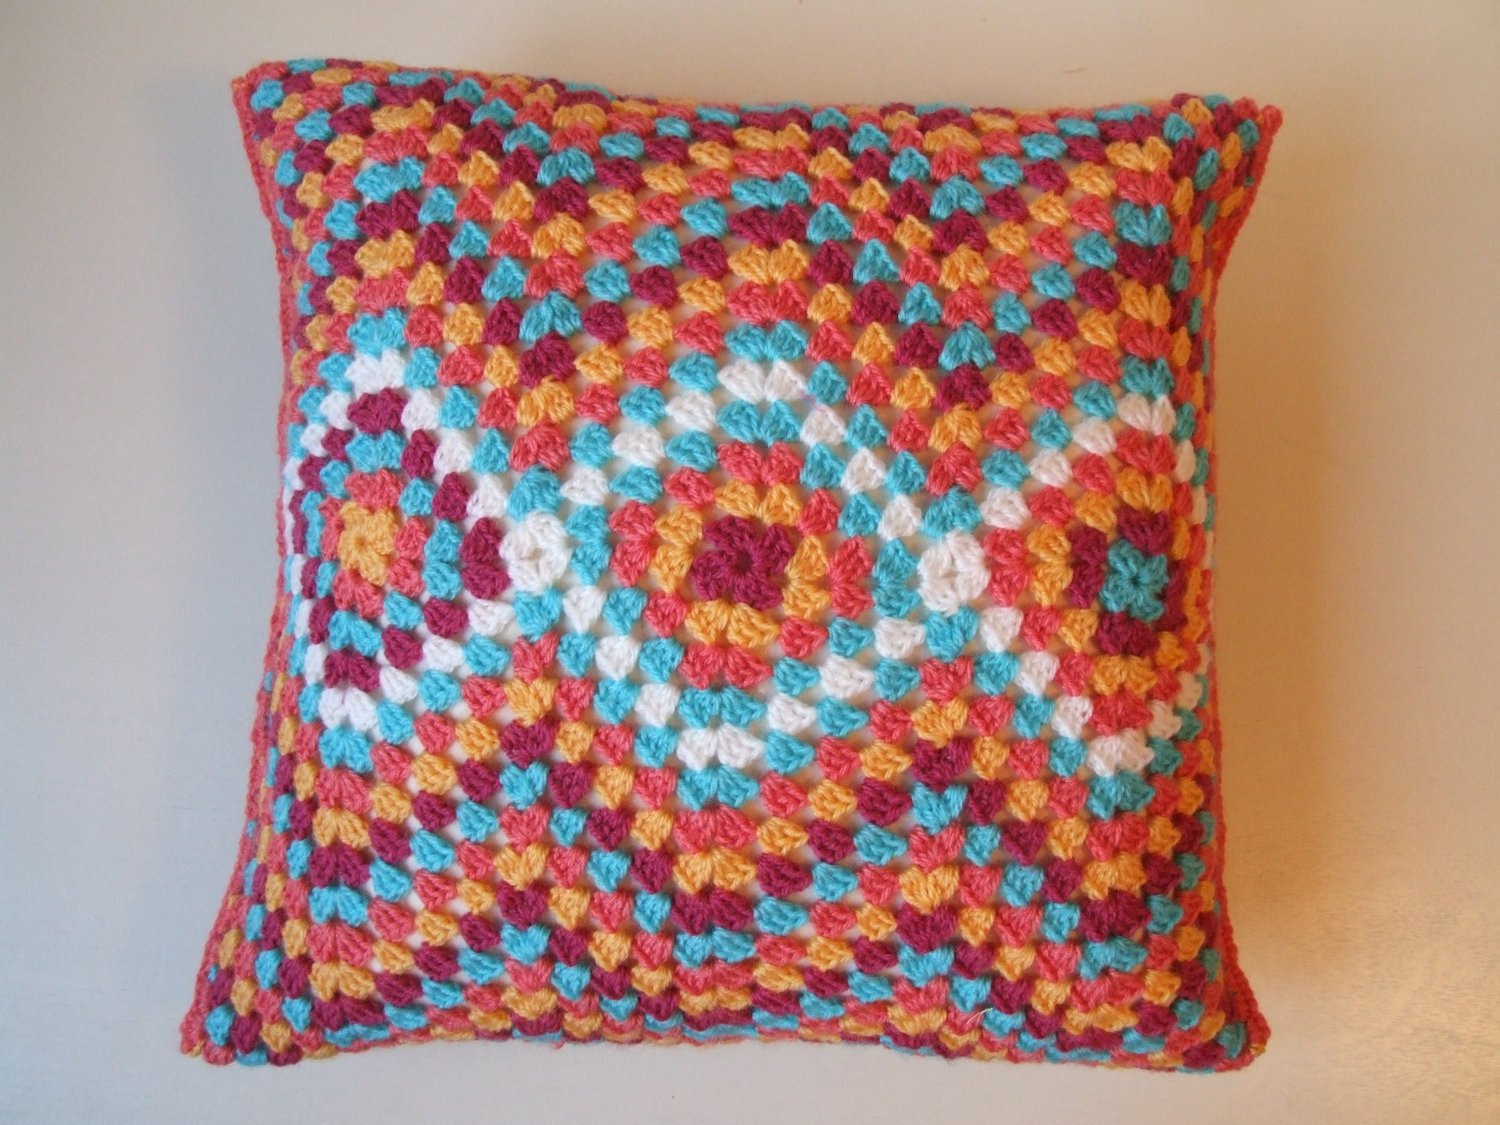 Crochet Pillow Cover Pattern Lovely Crochet Cushion Cover Moroccan Style Removable Crochet Of Lovely 47 Images Crochet Pillow Cover Pattern